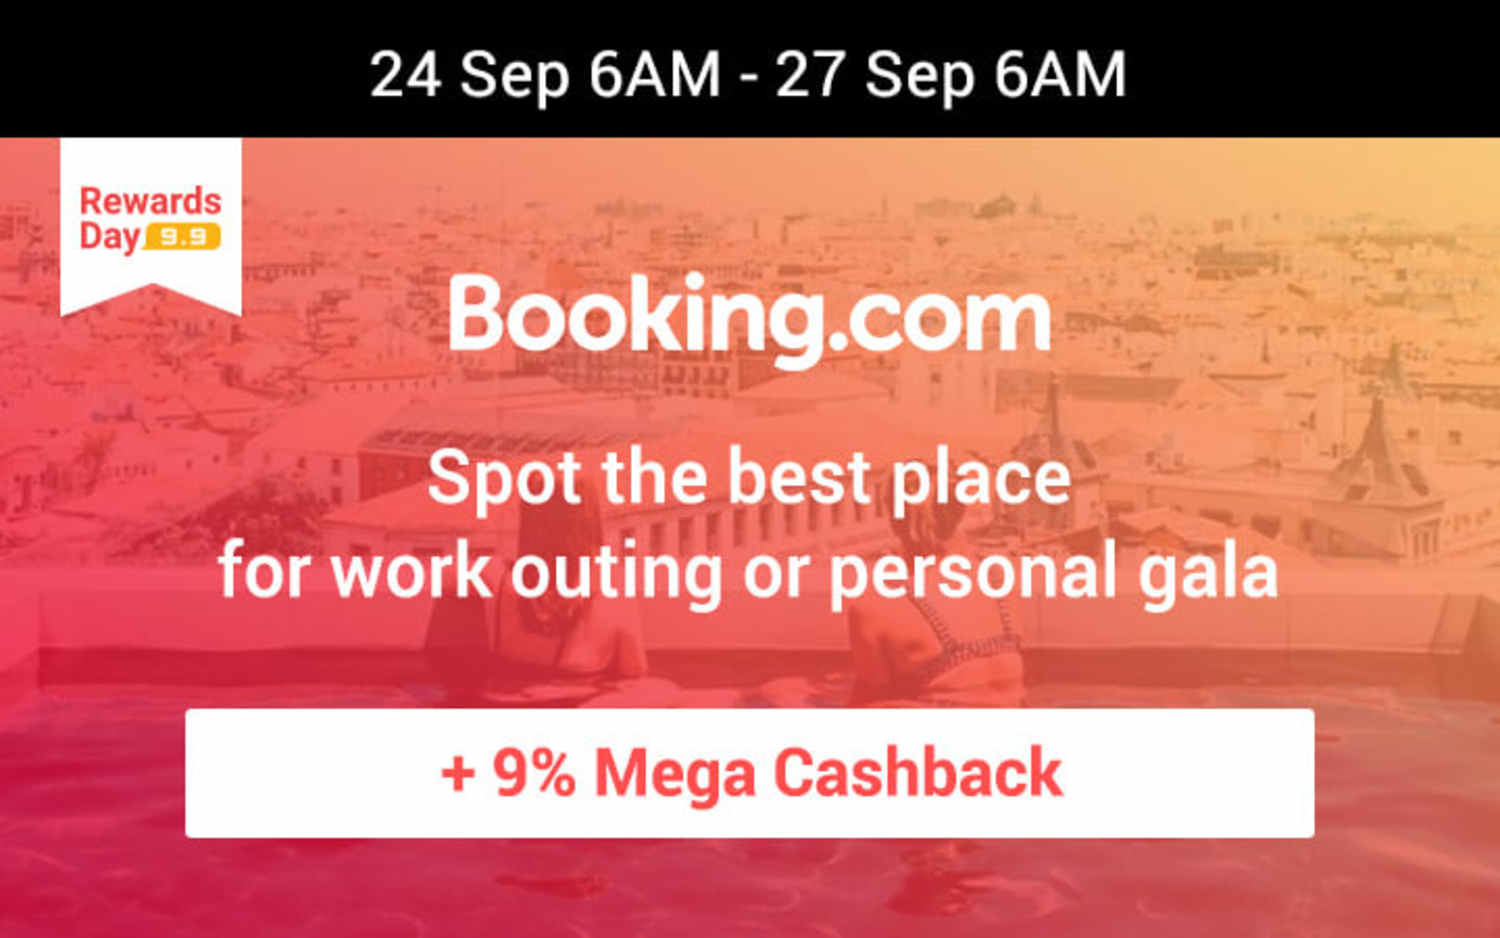 24 Sep 6AM - 27 Sep 6AM Booking.com Spot the best place for work outing or personal gala Get 9% Mega Cashback on hotels